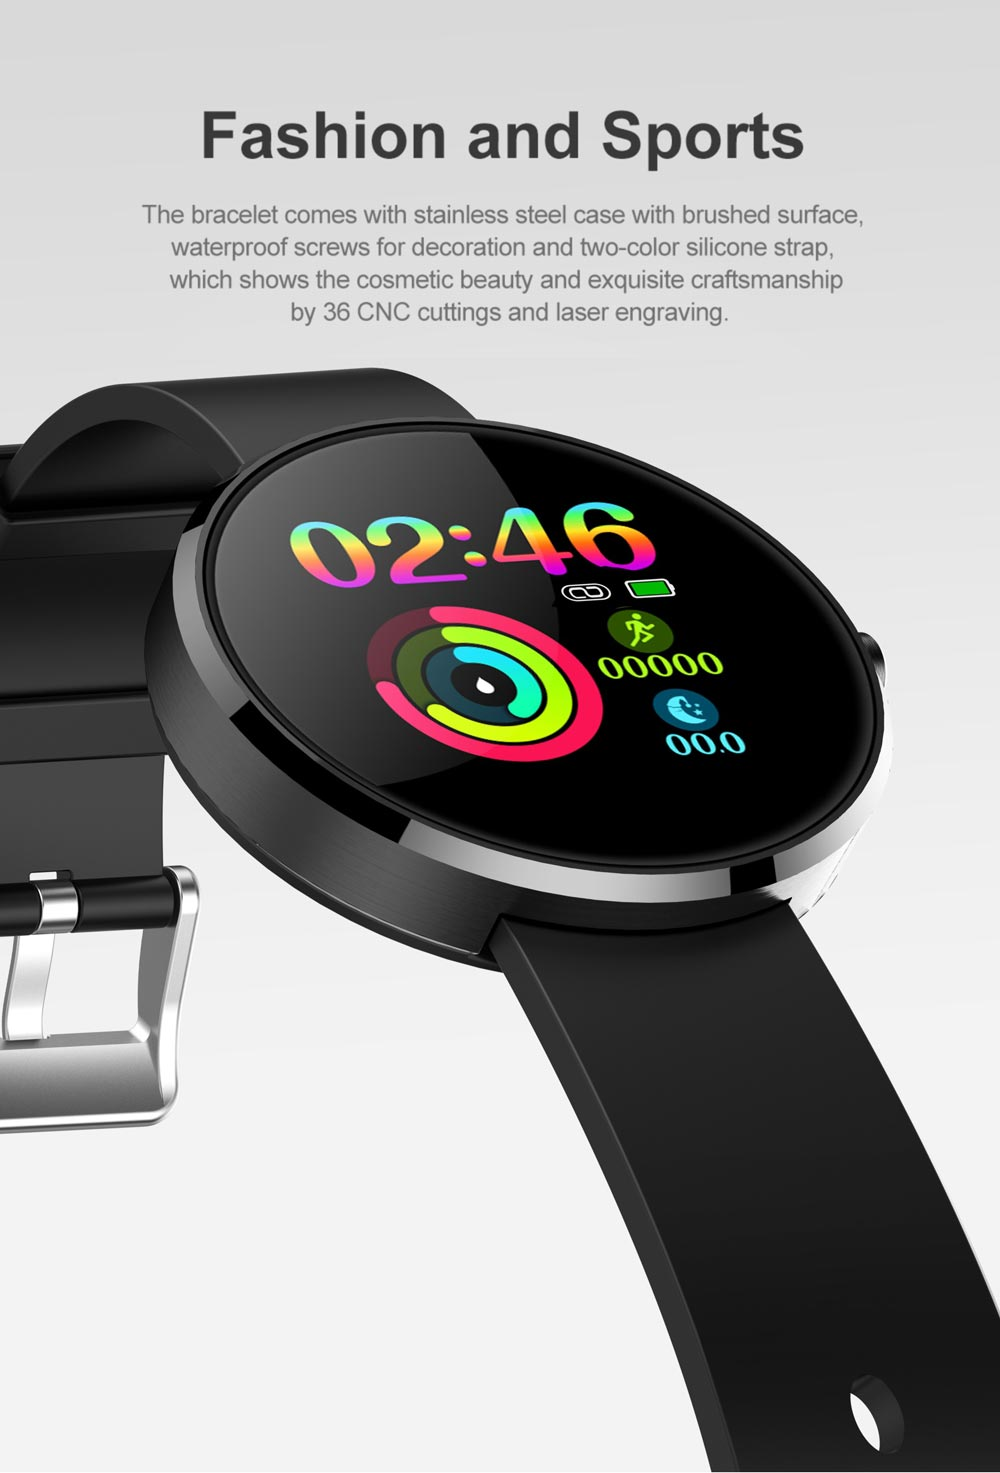 new b10 smartwatch